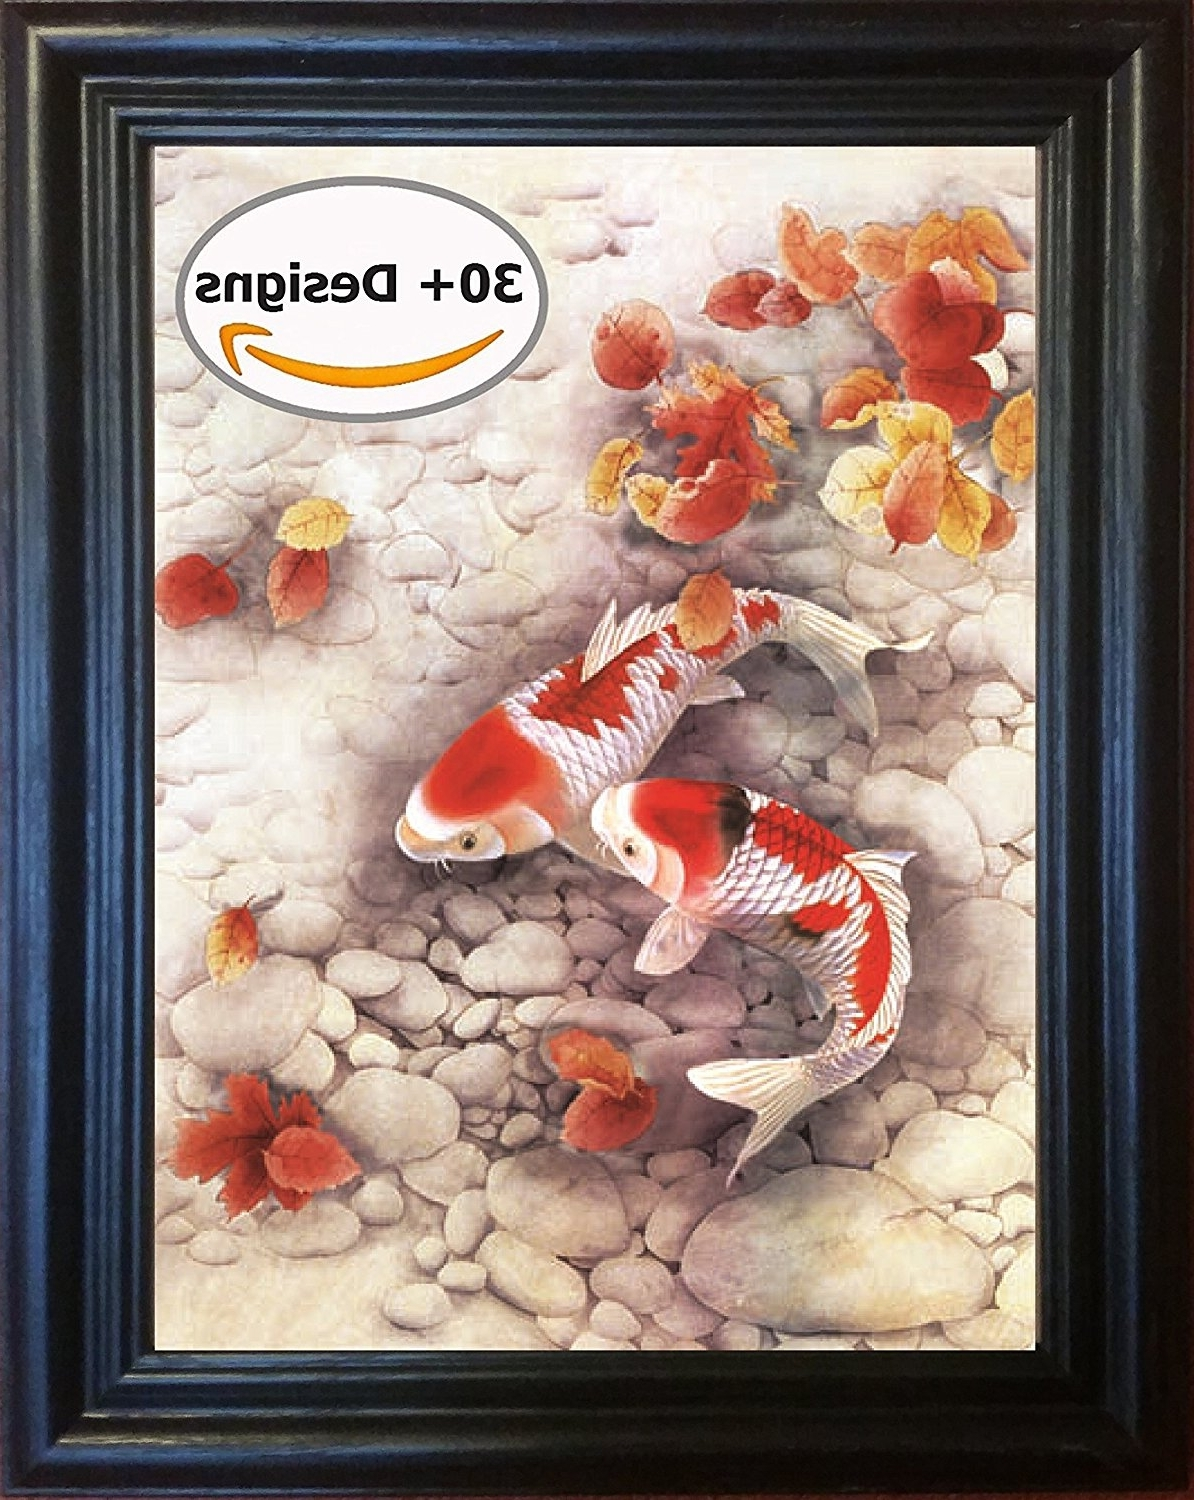 Trendy Framed 3D Wall Art Regarding Amazon: Koi Fish Framed 3D Lenticular Picture – 14.5X (View 15 of 15)